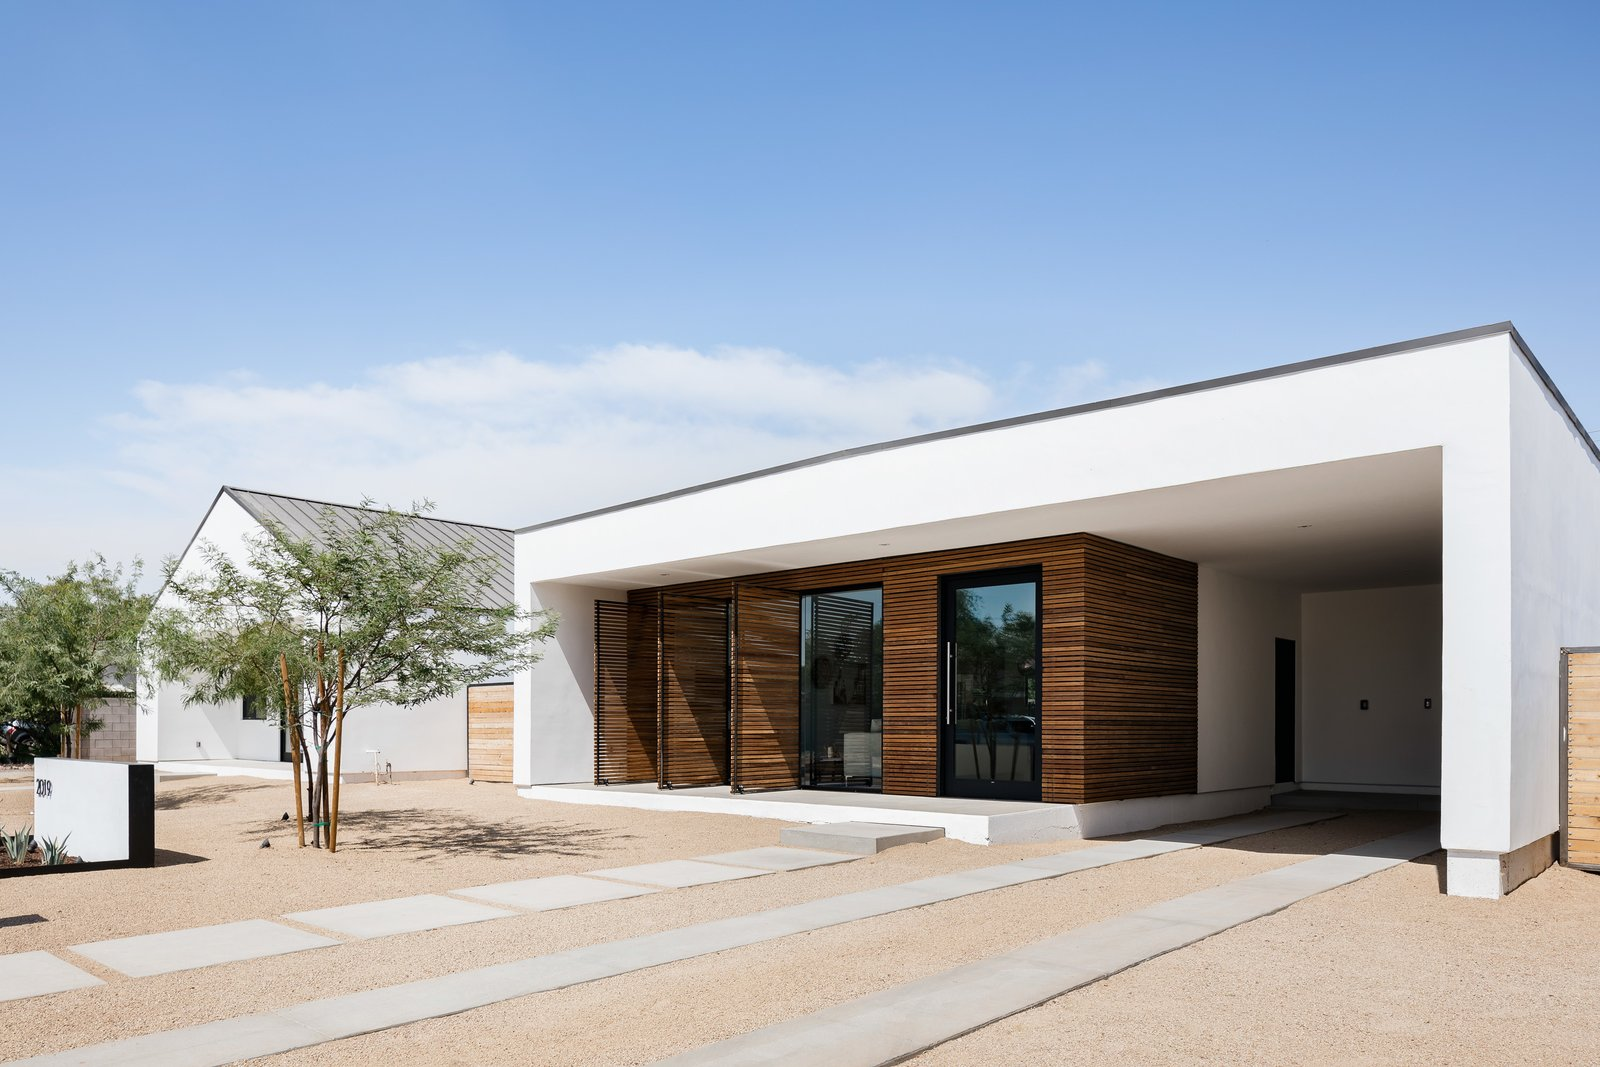 Exterior, Stucco Siding Material, Wood Siding Material, Flat RoofLine, and House Building Type  Photo 1 of 13 in In Arizona, a Modern Cube and Tumbledown 1930s Shack Make an Unlikely Couple